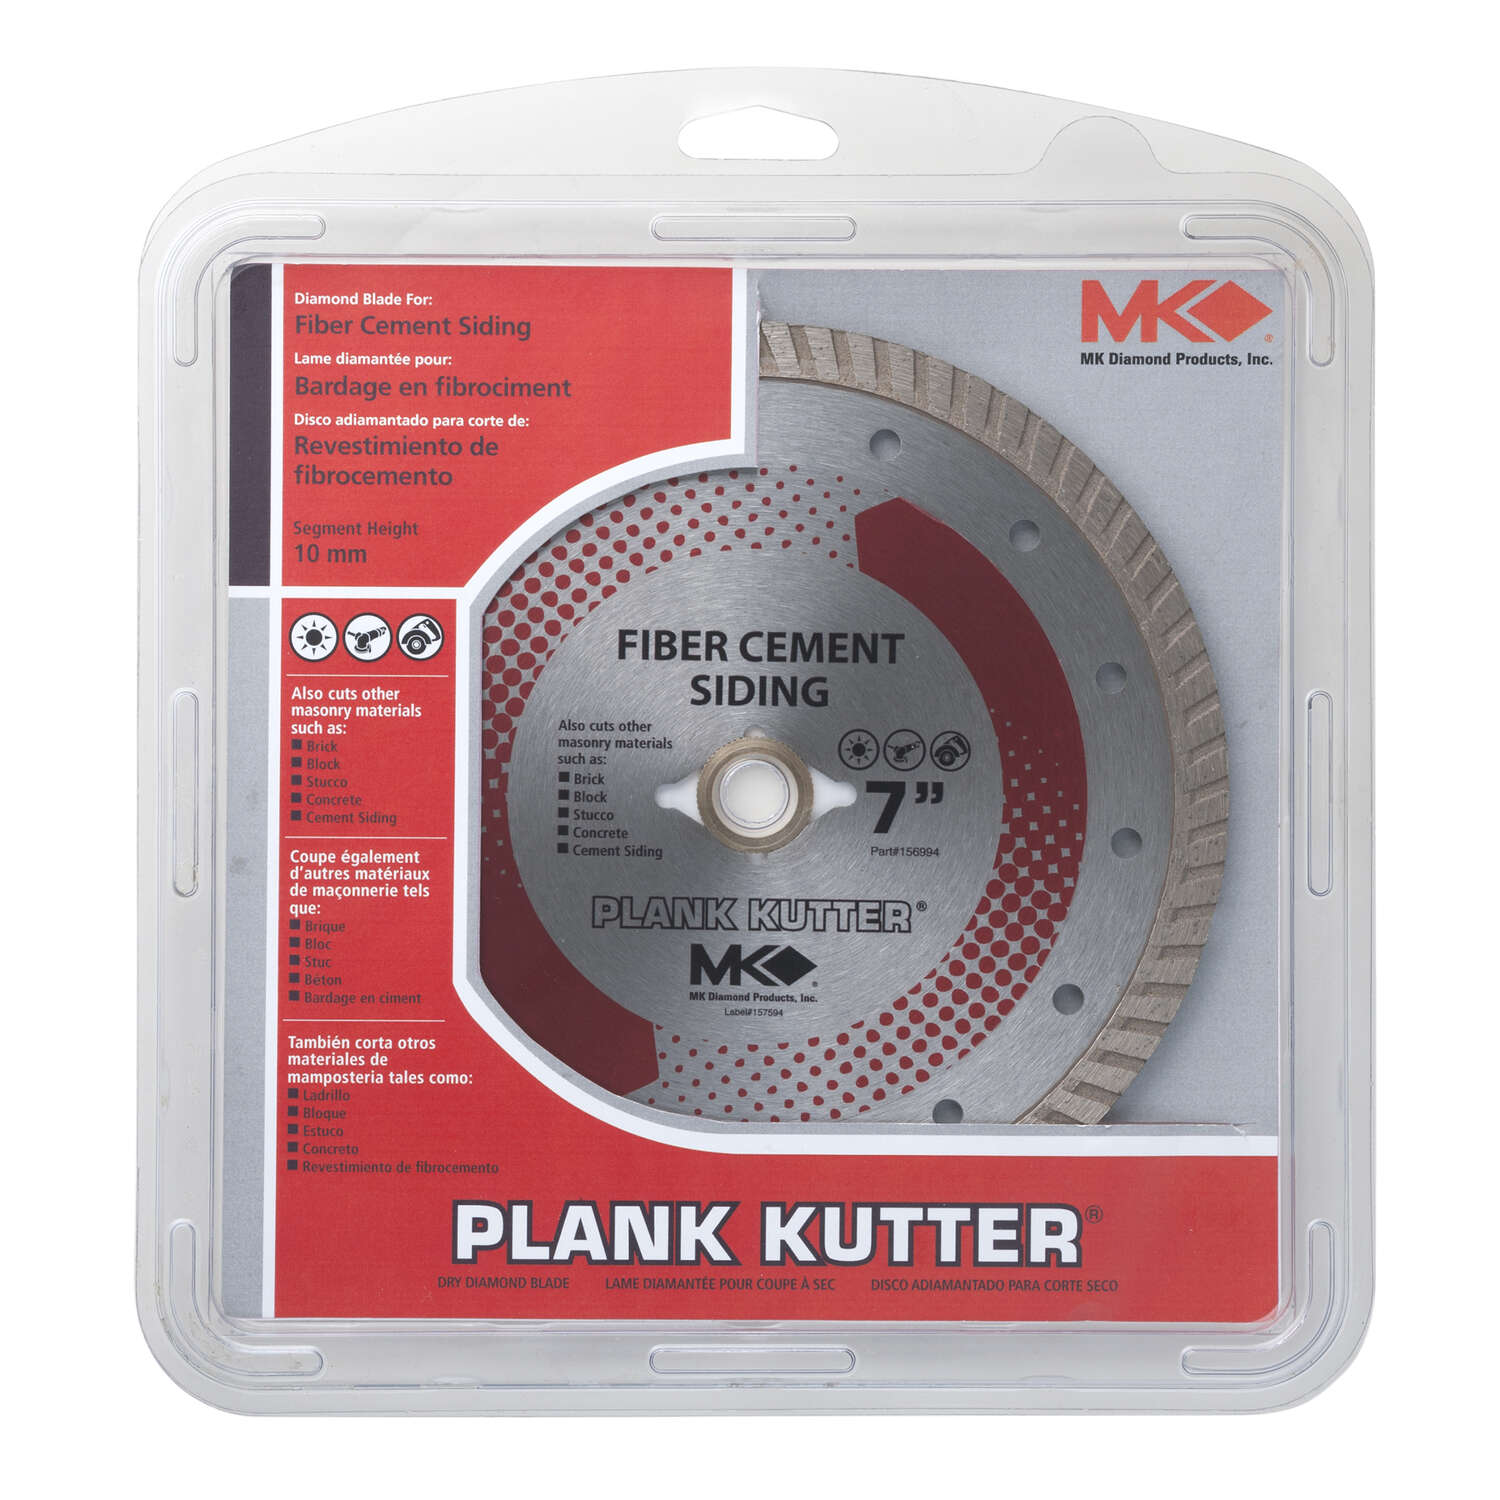 M.K. Diamond  7 in. Dia. x 5/8 in.  Plank Kutter  Diamond  Continuous Rim Circular Saw Blade  1 pc.